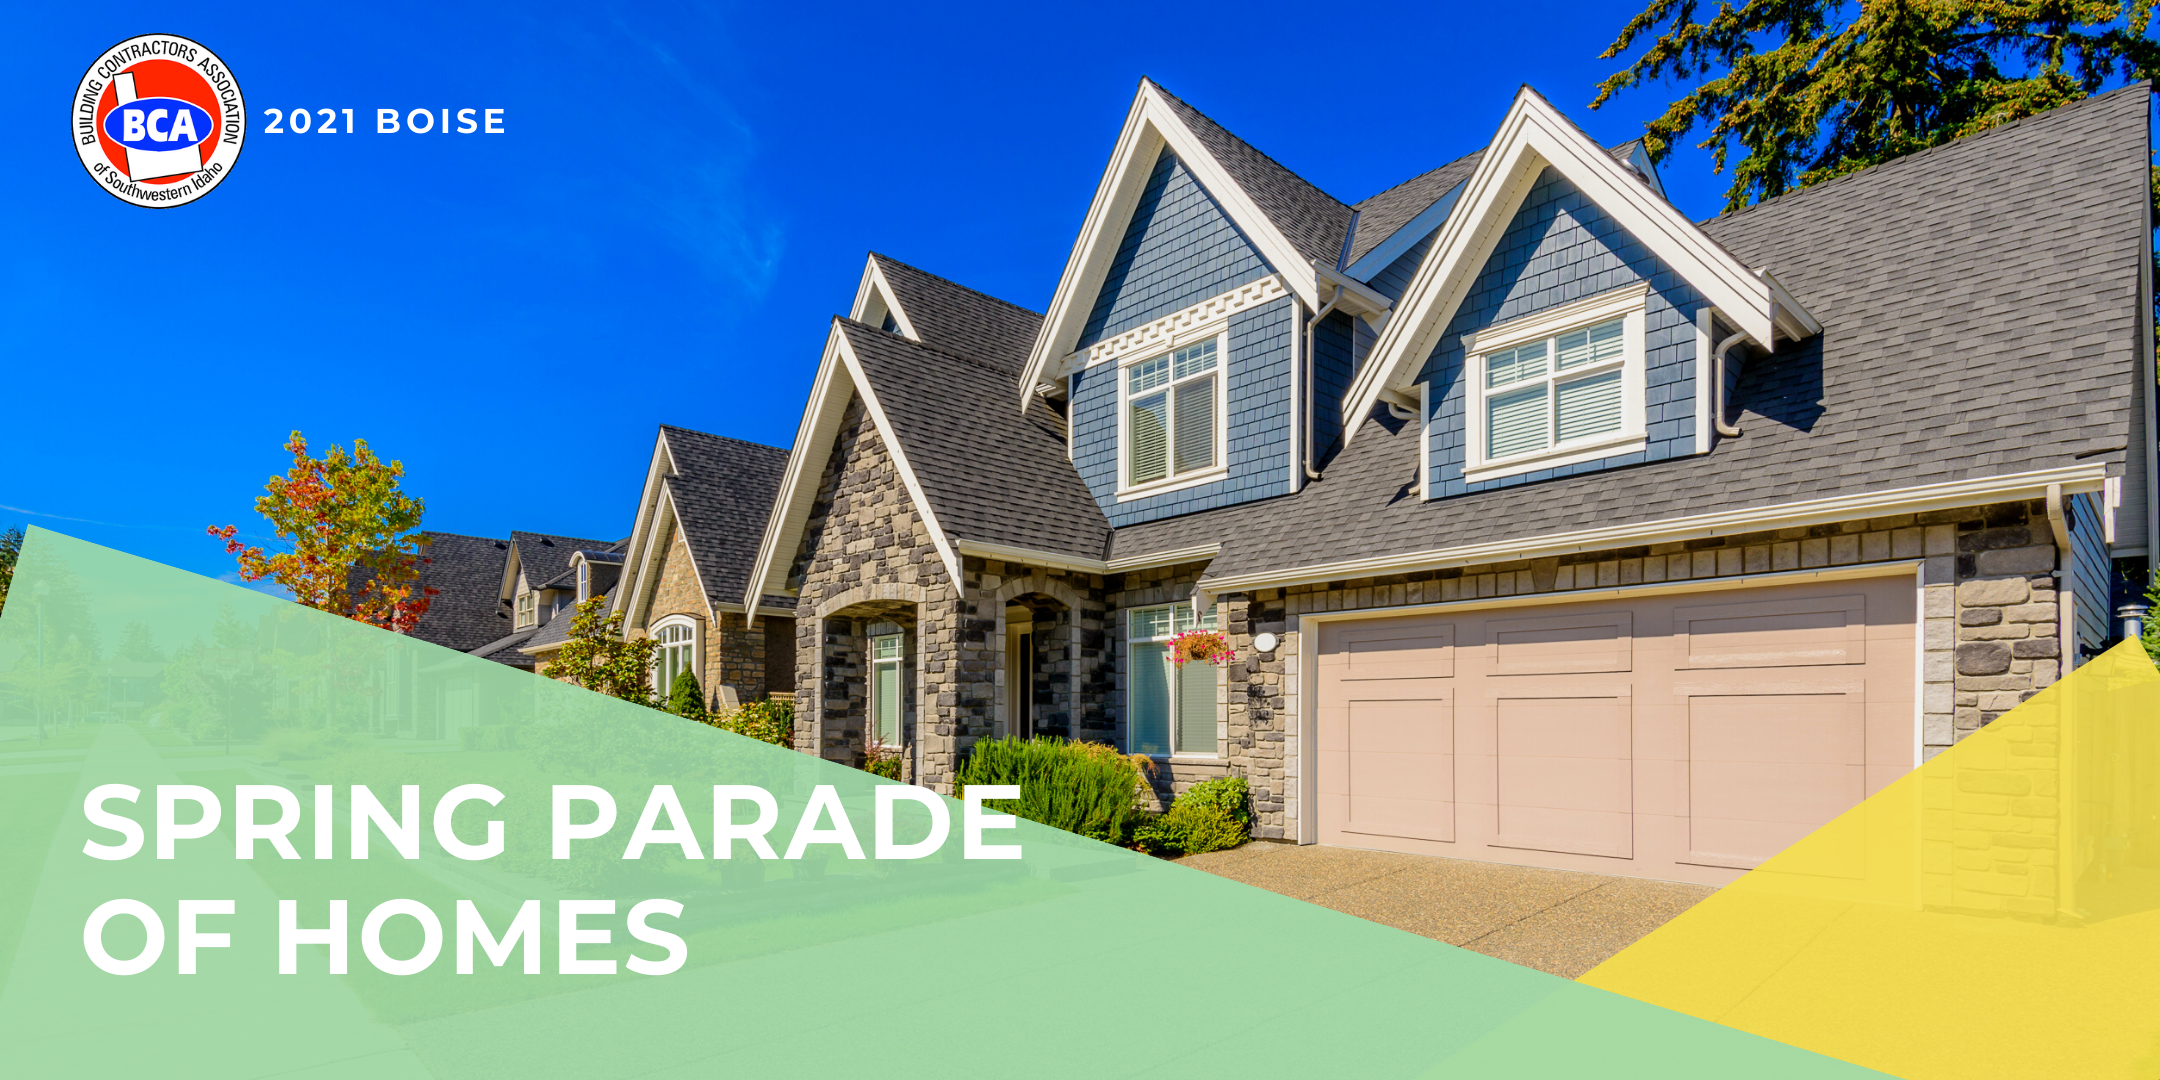 The Boise Spring Parade of Homes